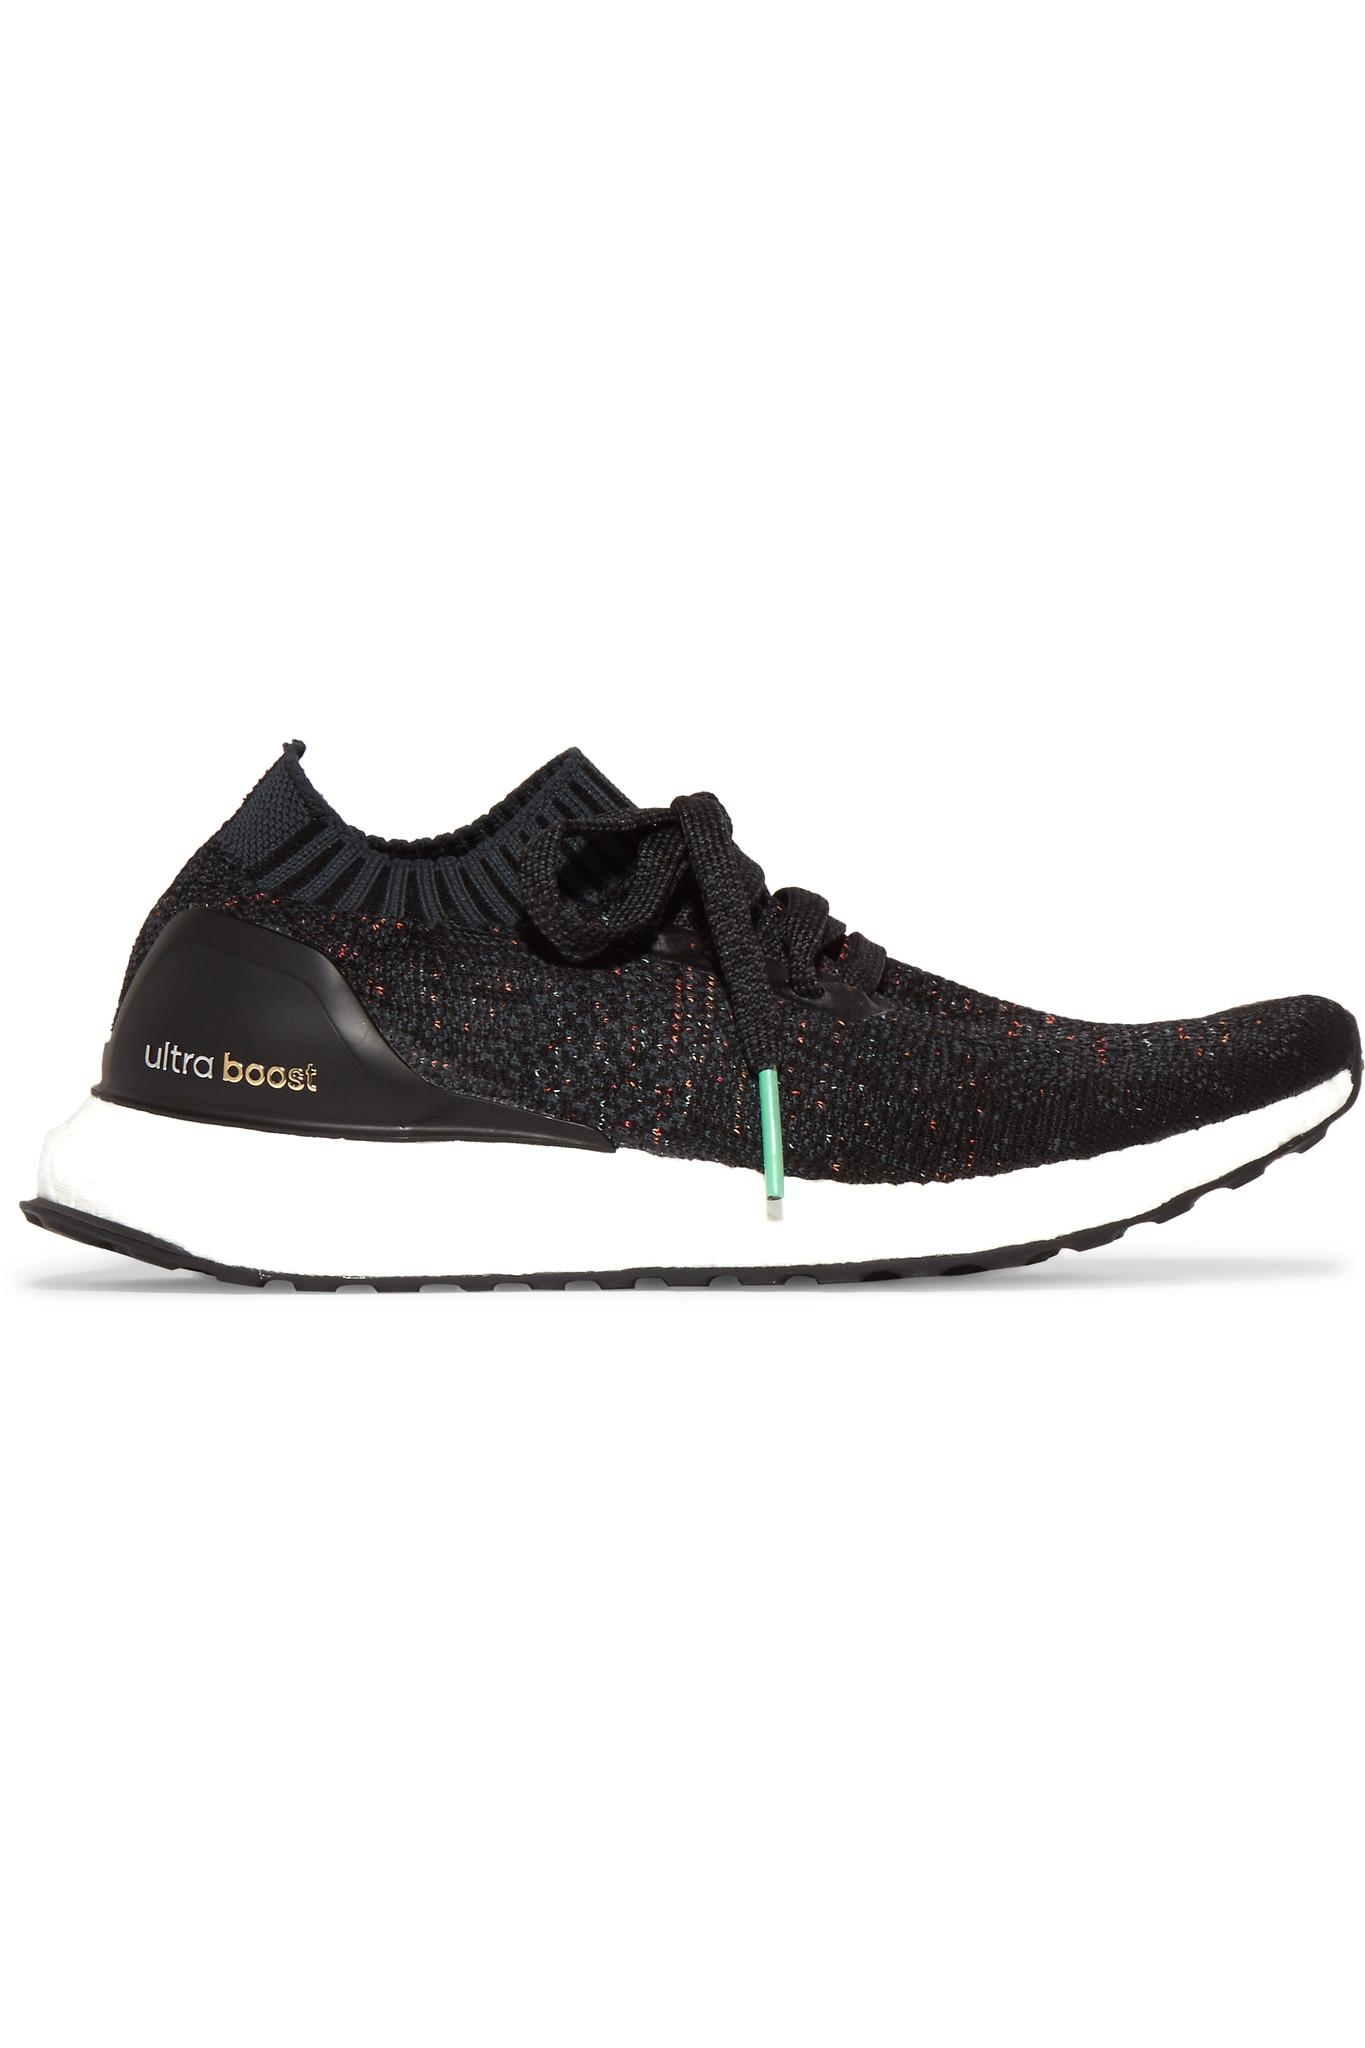 Adidas Steeplechase Shoes